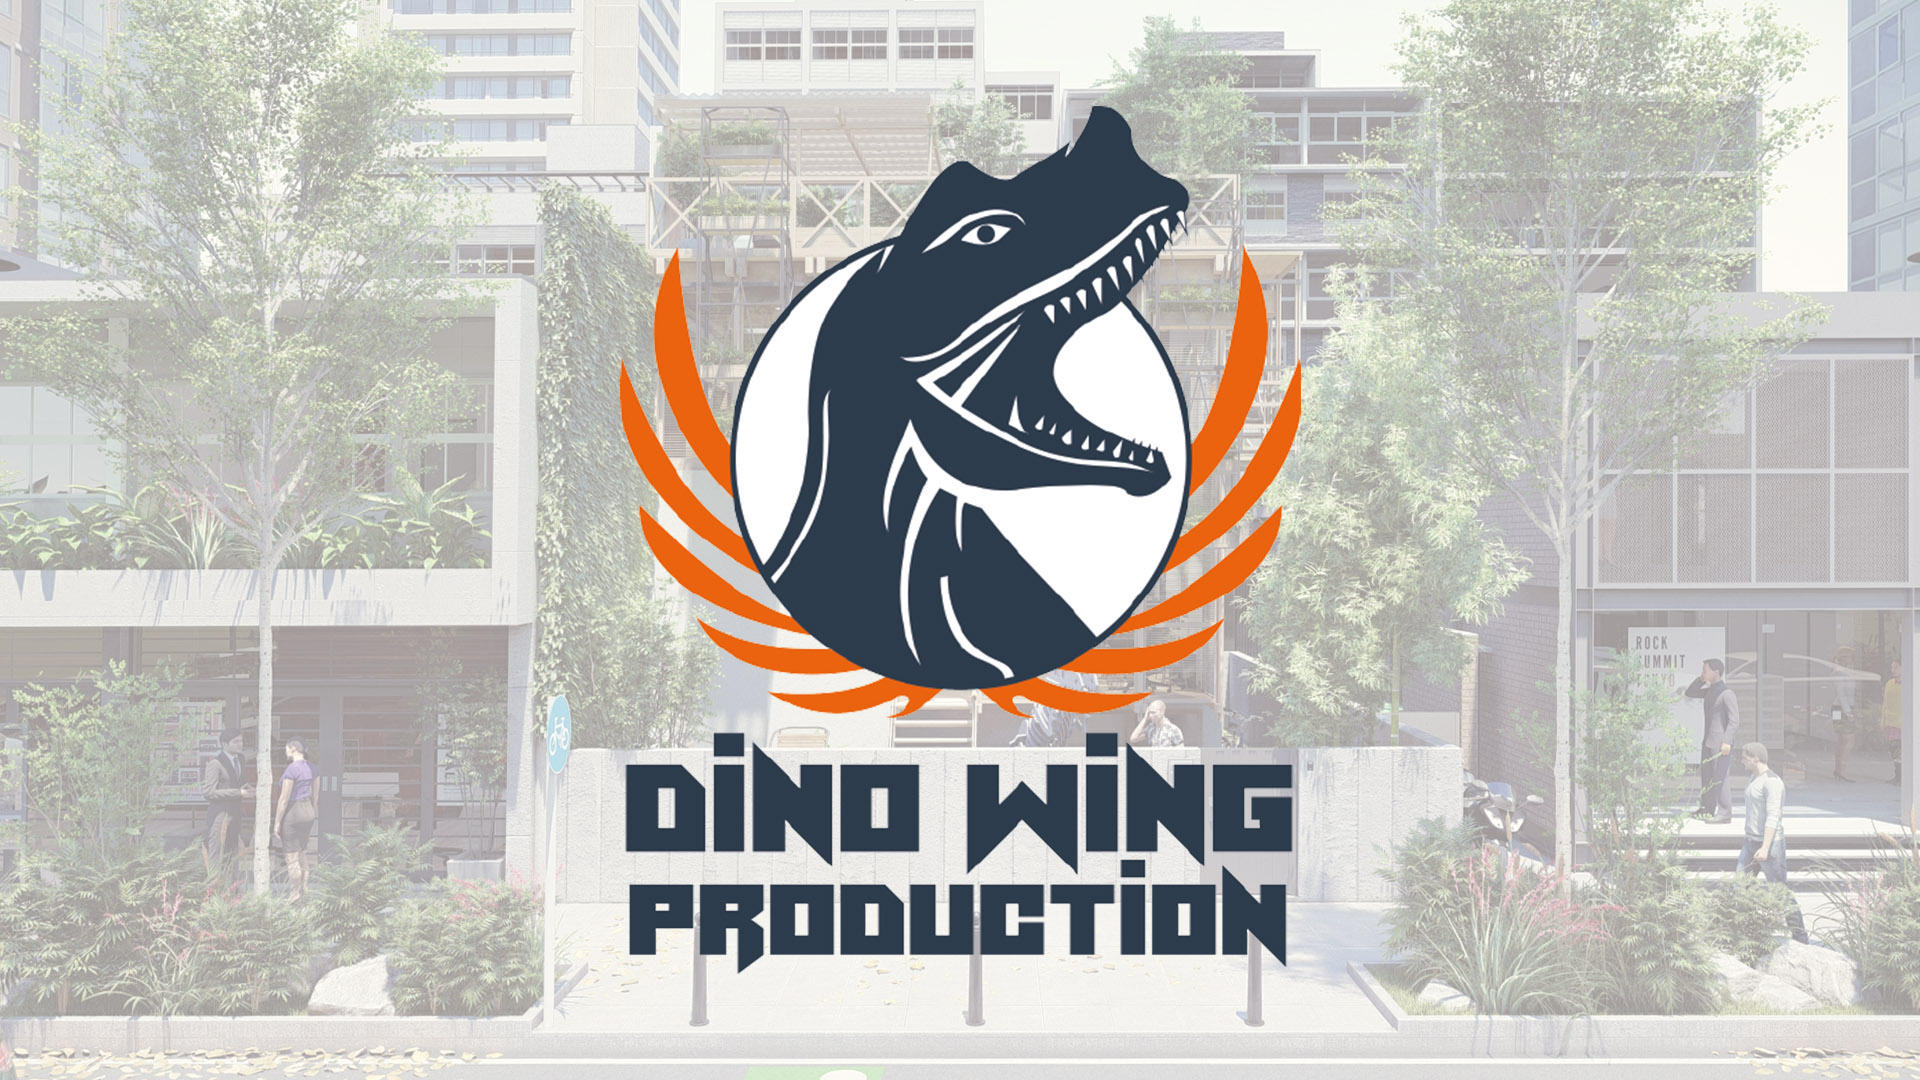 DINO WING PRODUCTION